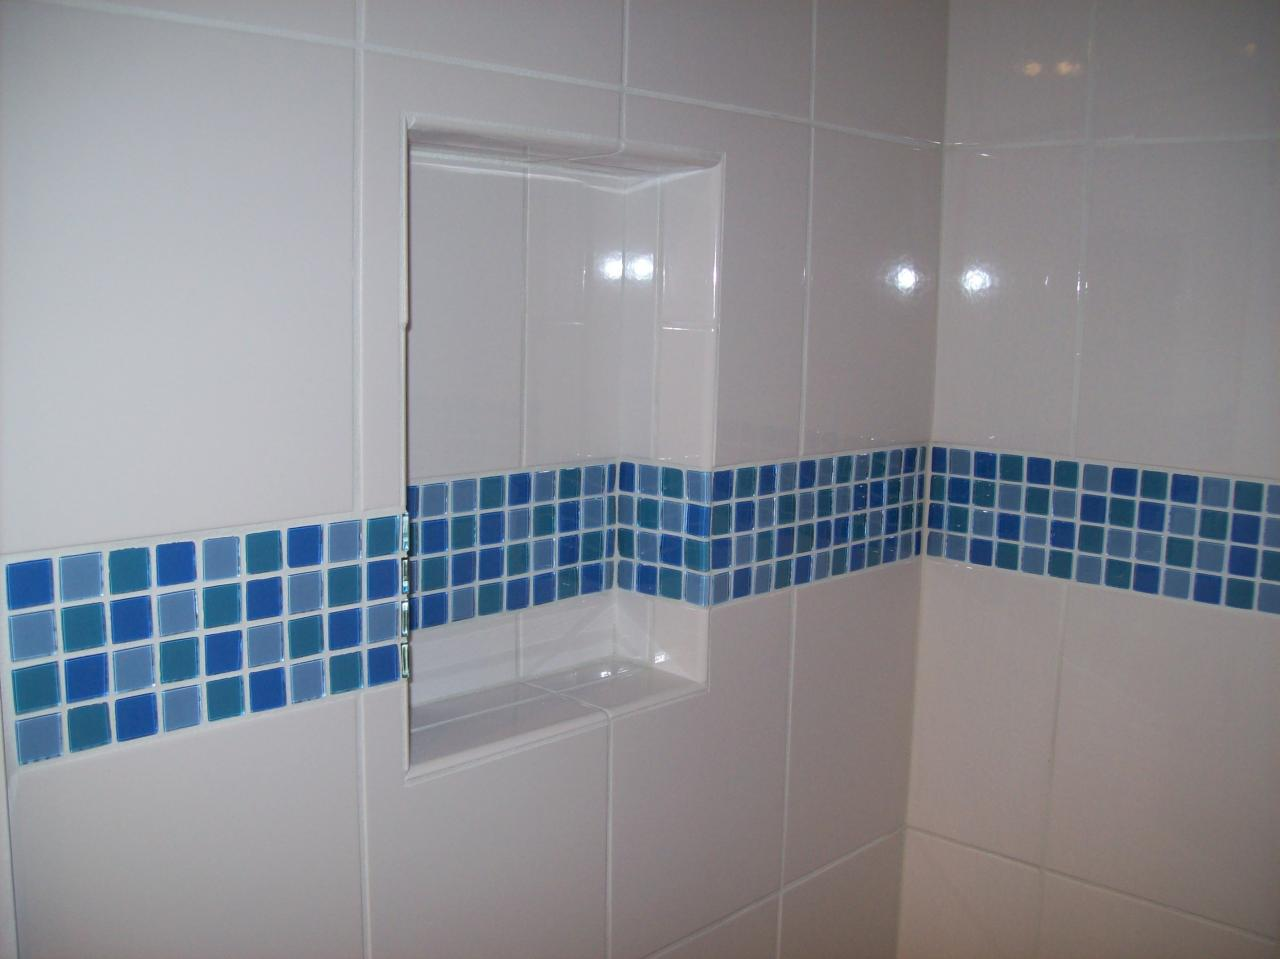 Decorative bathroom - Decorative bathroom tiles ...